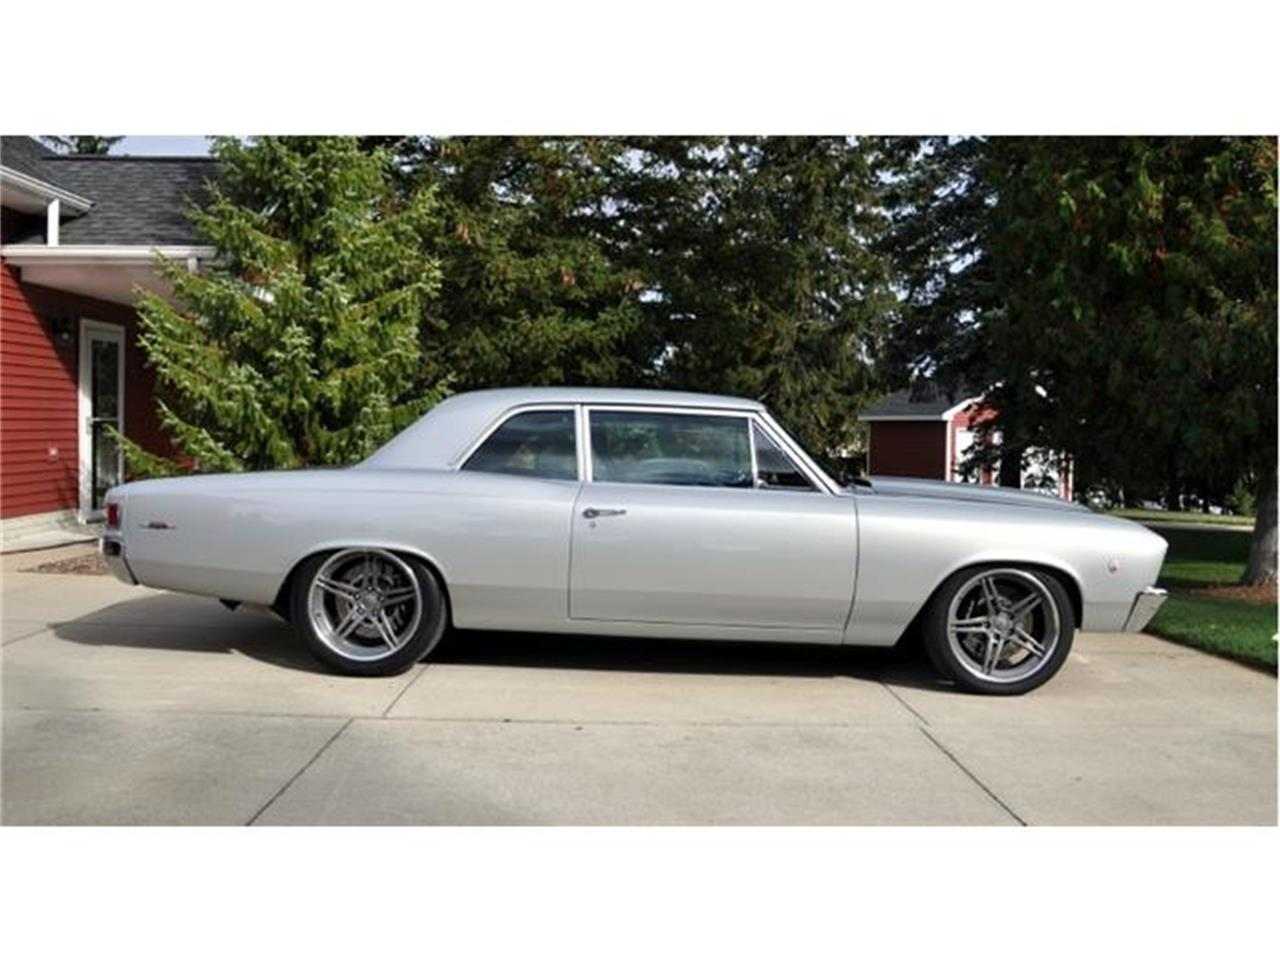 Buy or Sell Classic Cars in Calgary Cars Kijiji - oukas.info